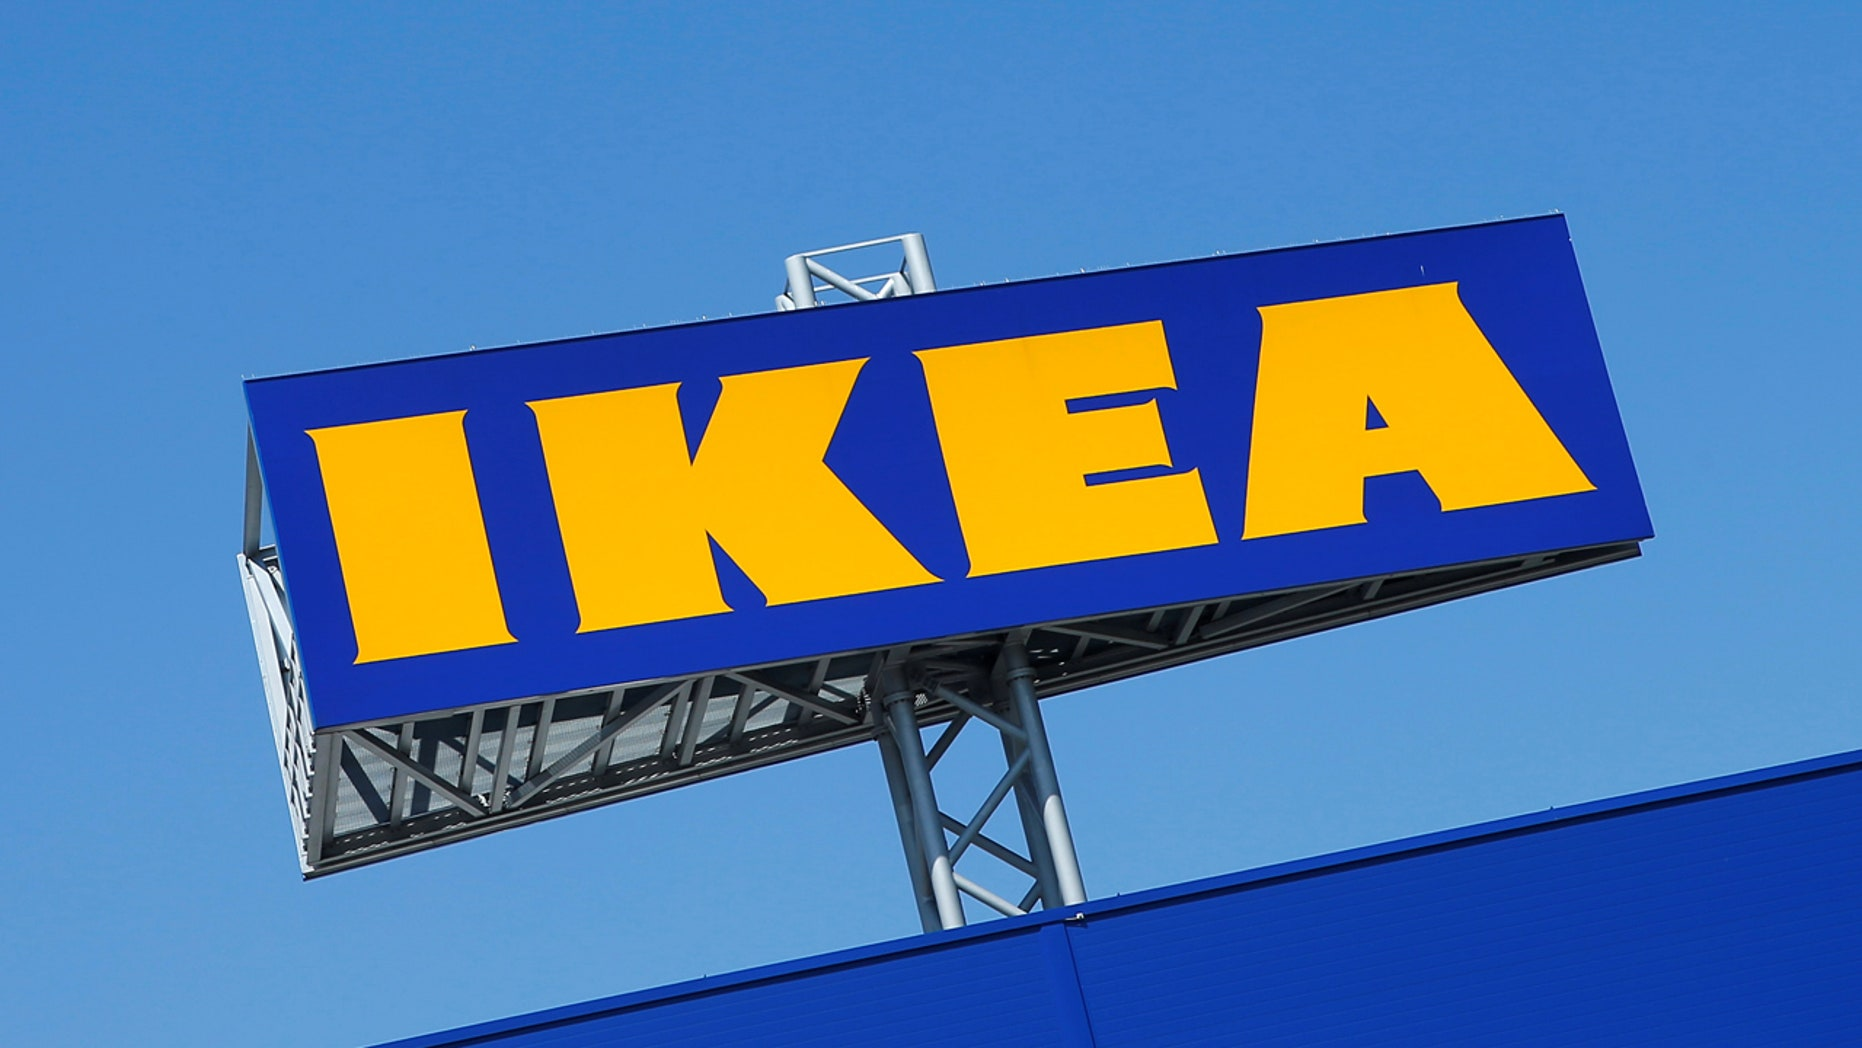 FILE: A California boy is reportedly the eighth child to be killed by an Ikea dresser that was recalled in June 2016.